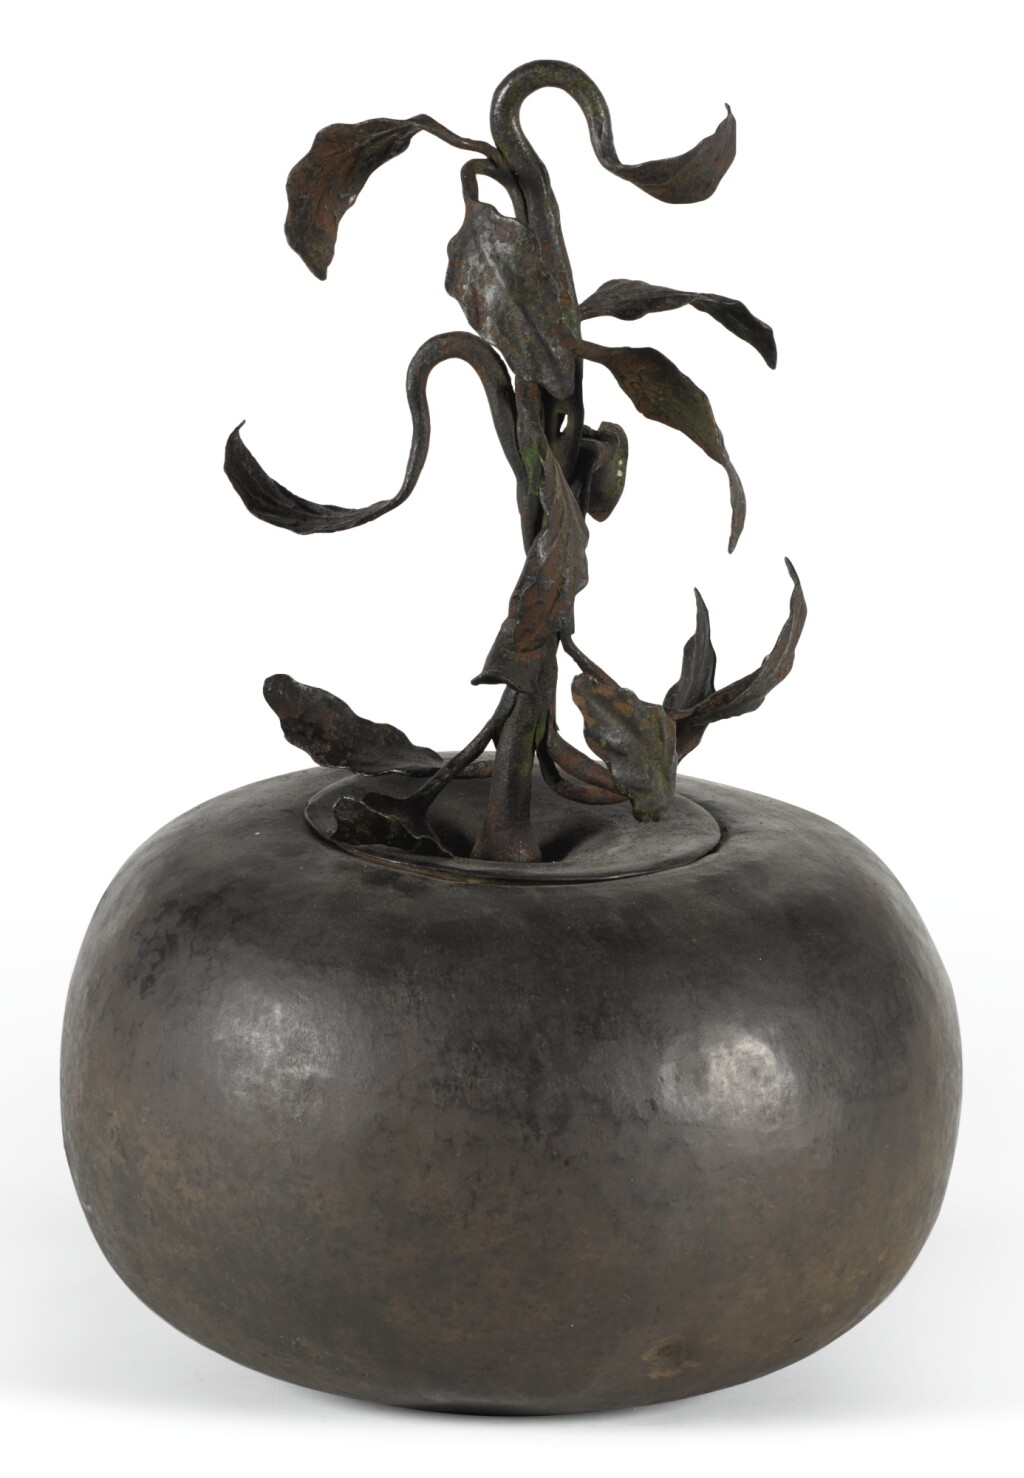 PROBABLY SWISS, 18TH CENTURY | Sign in the Form of an Apple